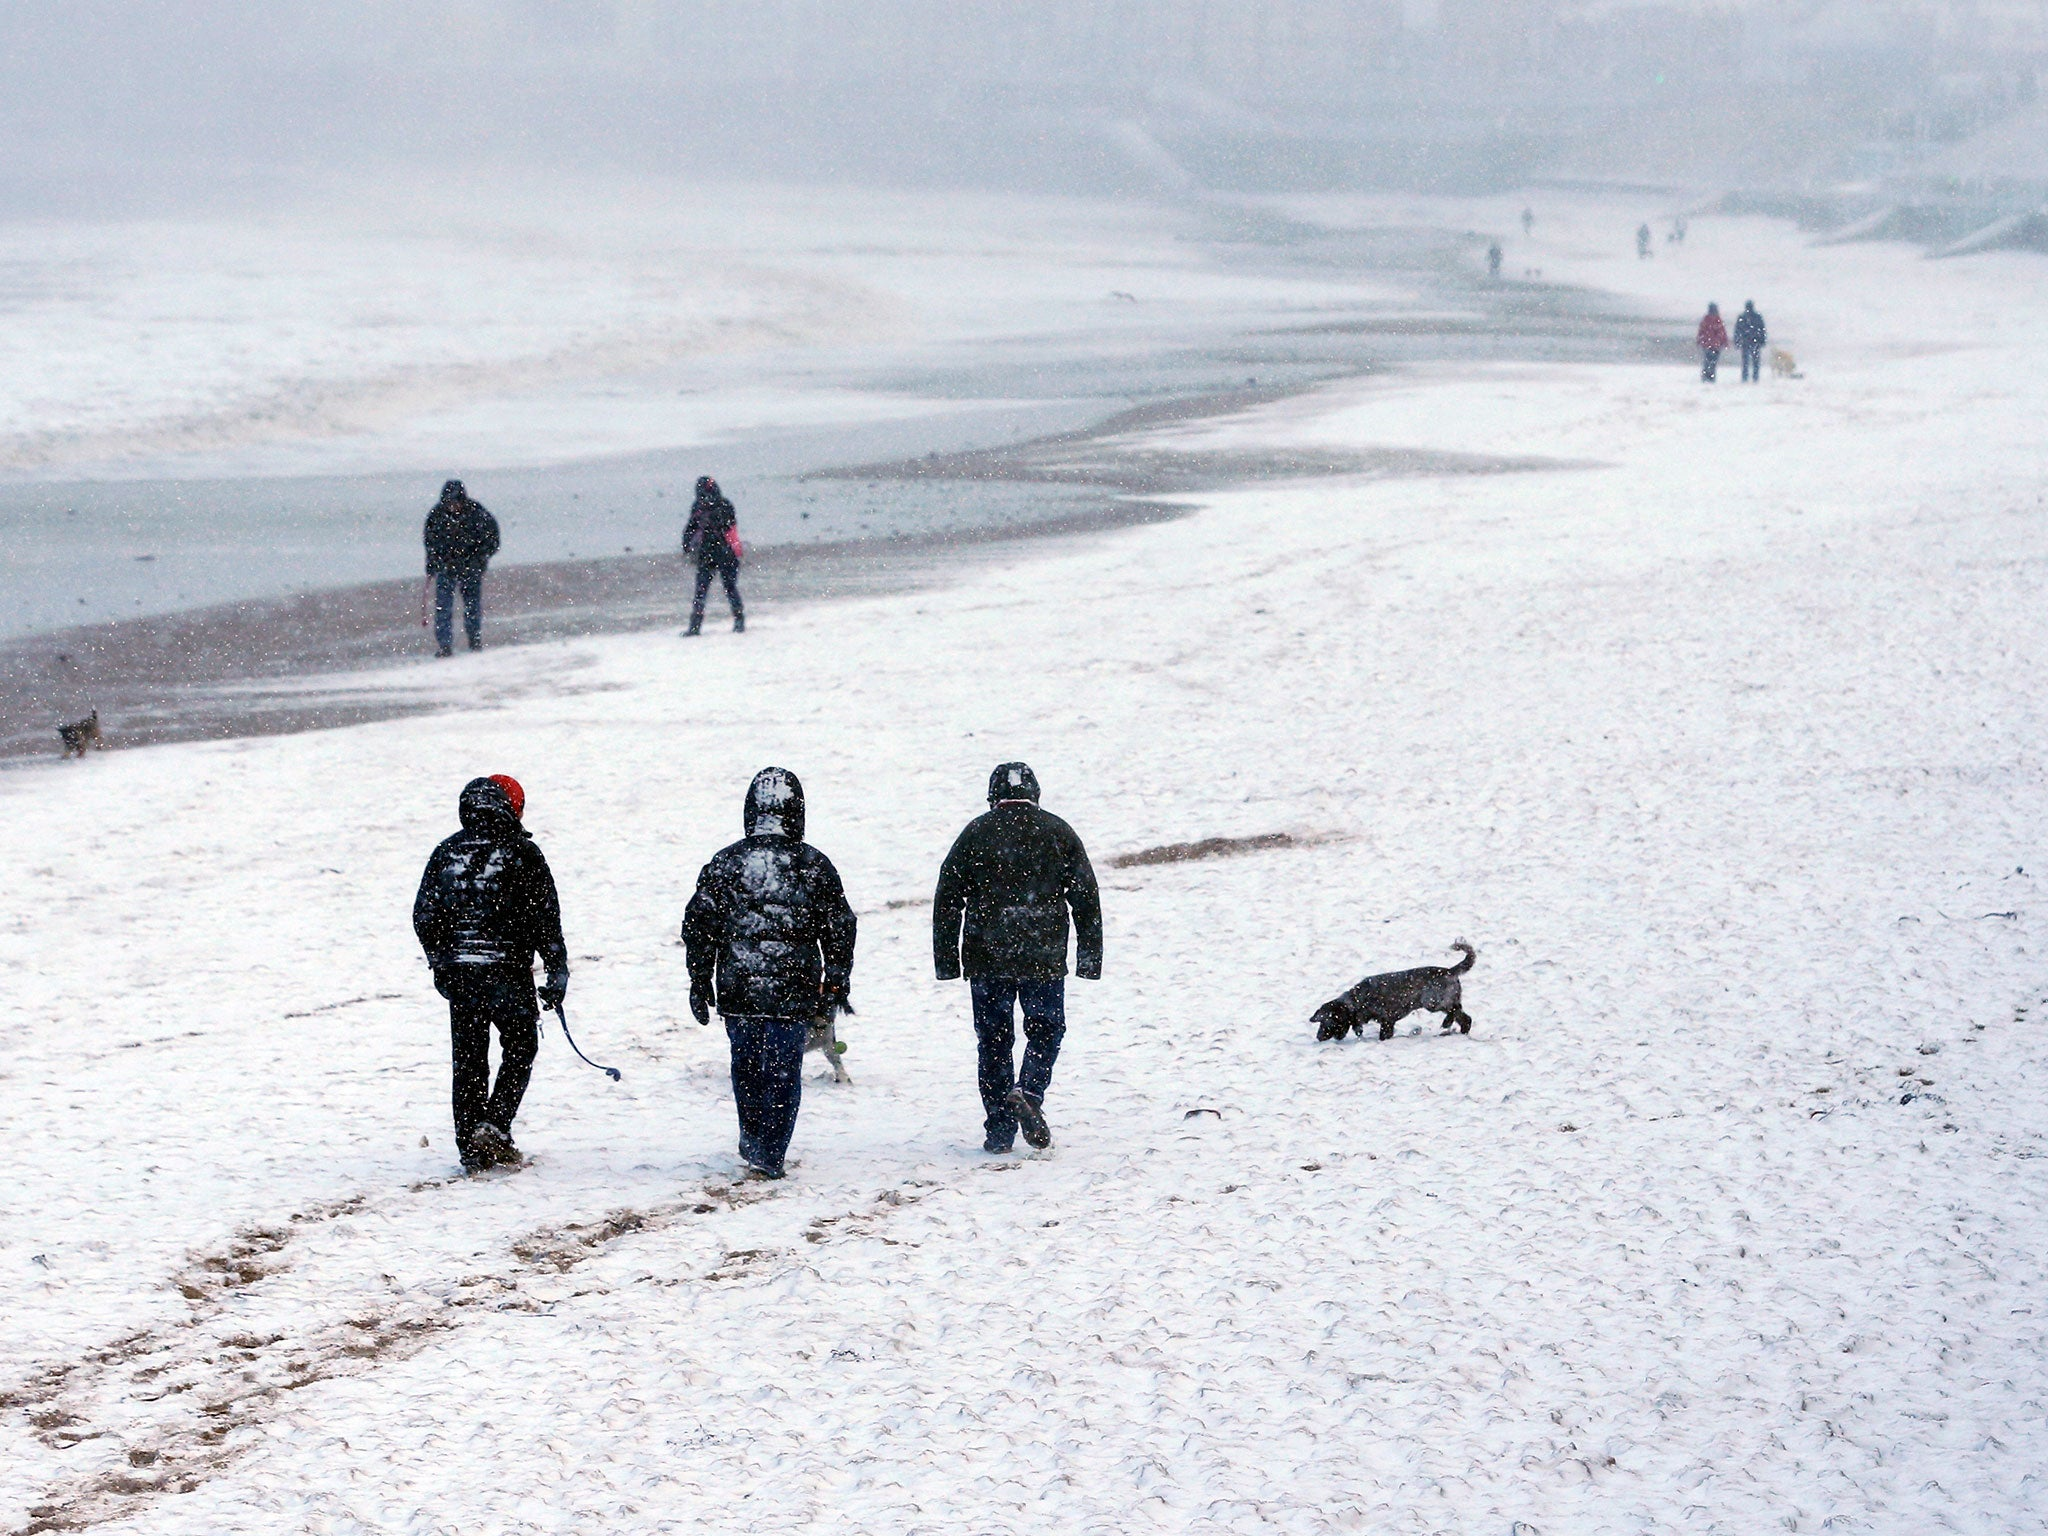 UK weather forecast: Snow and sub-zero temperatures to hit Britain